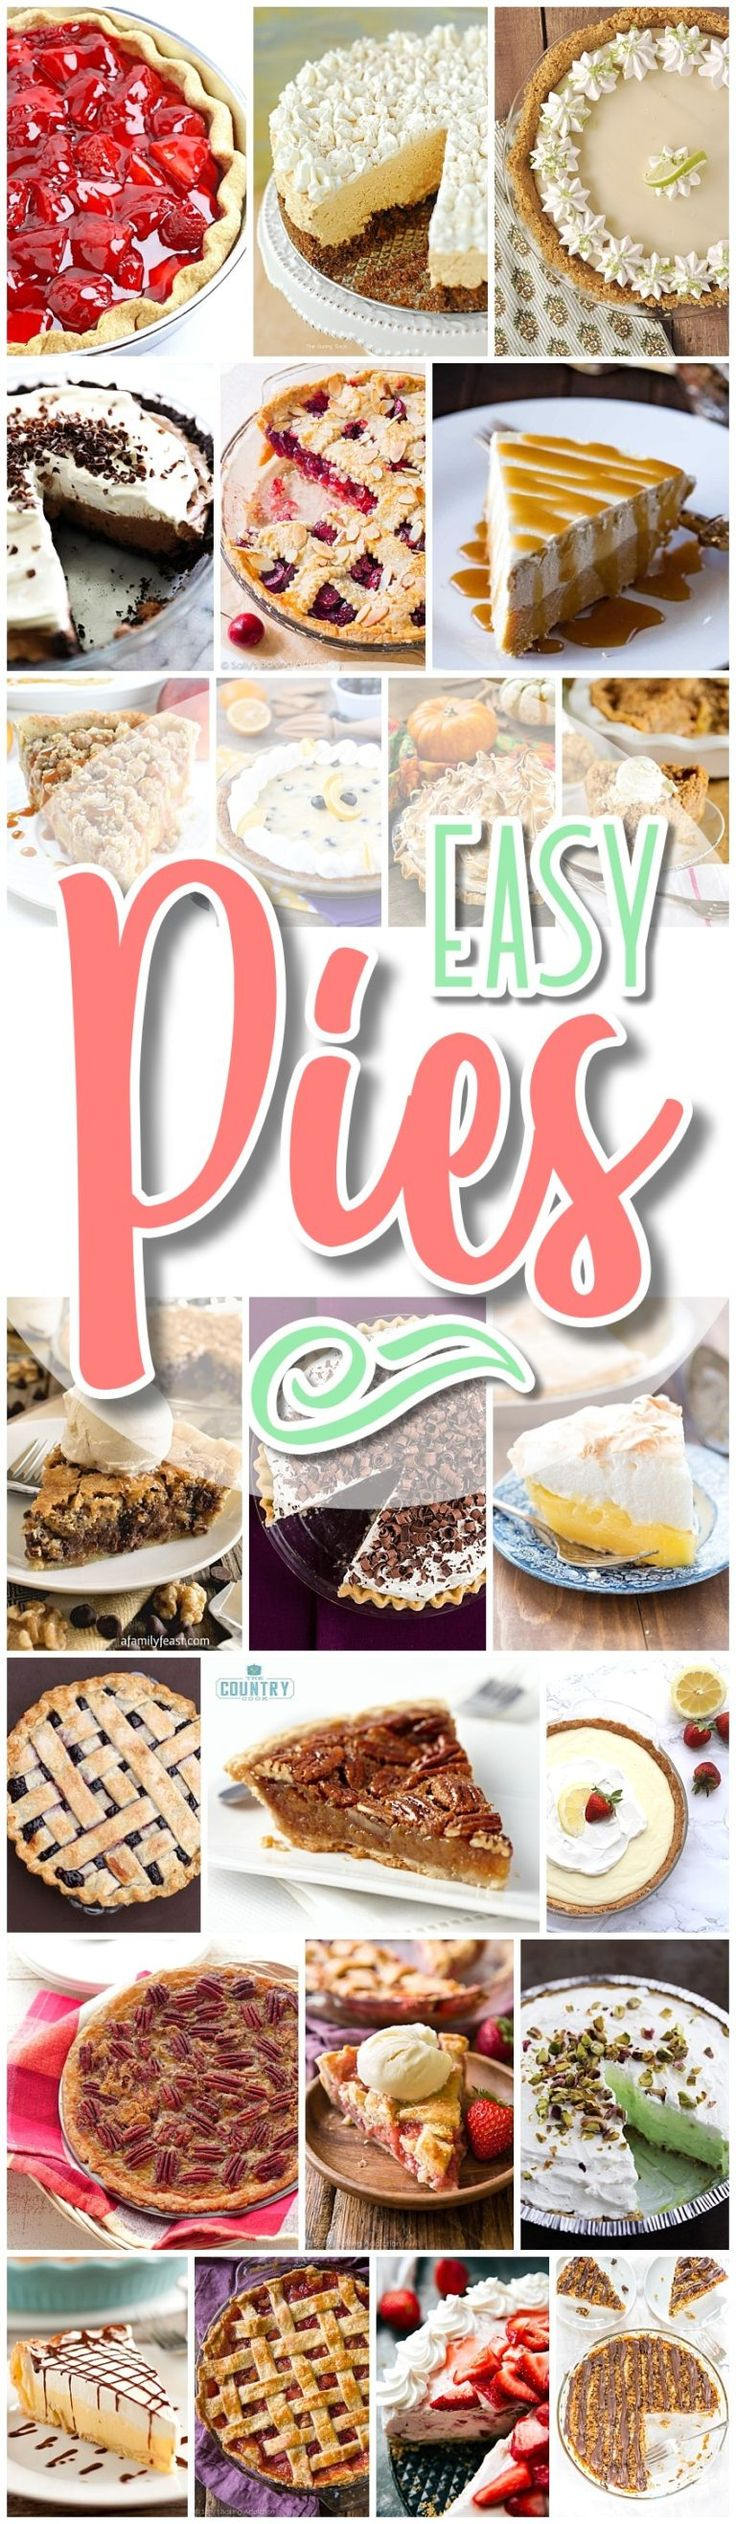 Favorite EASY Pies Recipes - Thanksgiving and Christmas Holiday Dinner Desserts - No-Bake + Bake Musts for Holidays and Party Menus - Dreaming in DIY - Perfect for for Easter and Mother's Day Spring and Summer brunch dessert tables, 4th of July barbecues, summer potlucks, neighborhood block parties and birthdays.